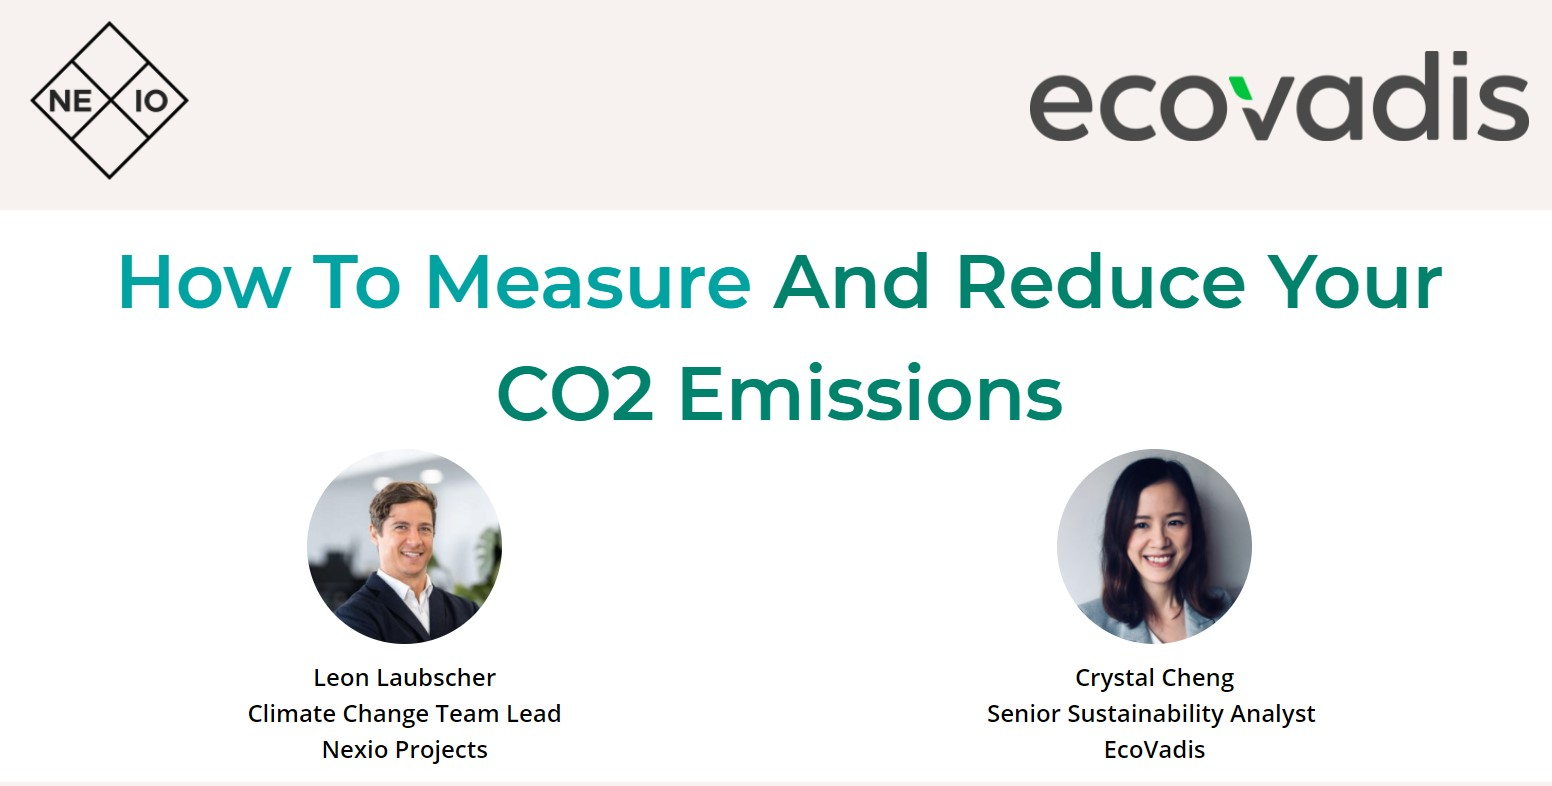 Webinar 'How To Measure And Reduce Your CO2 Emissions'